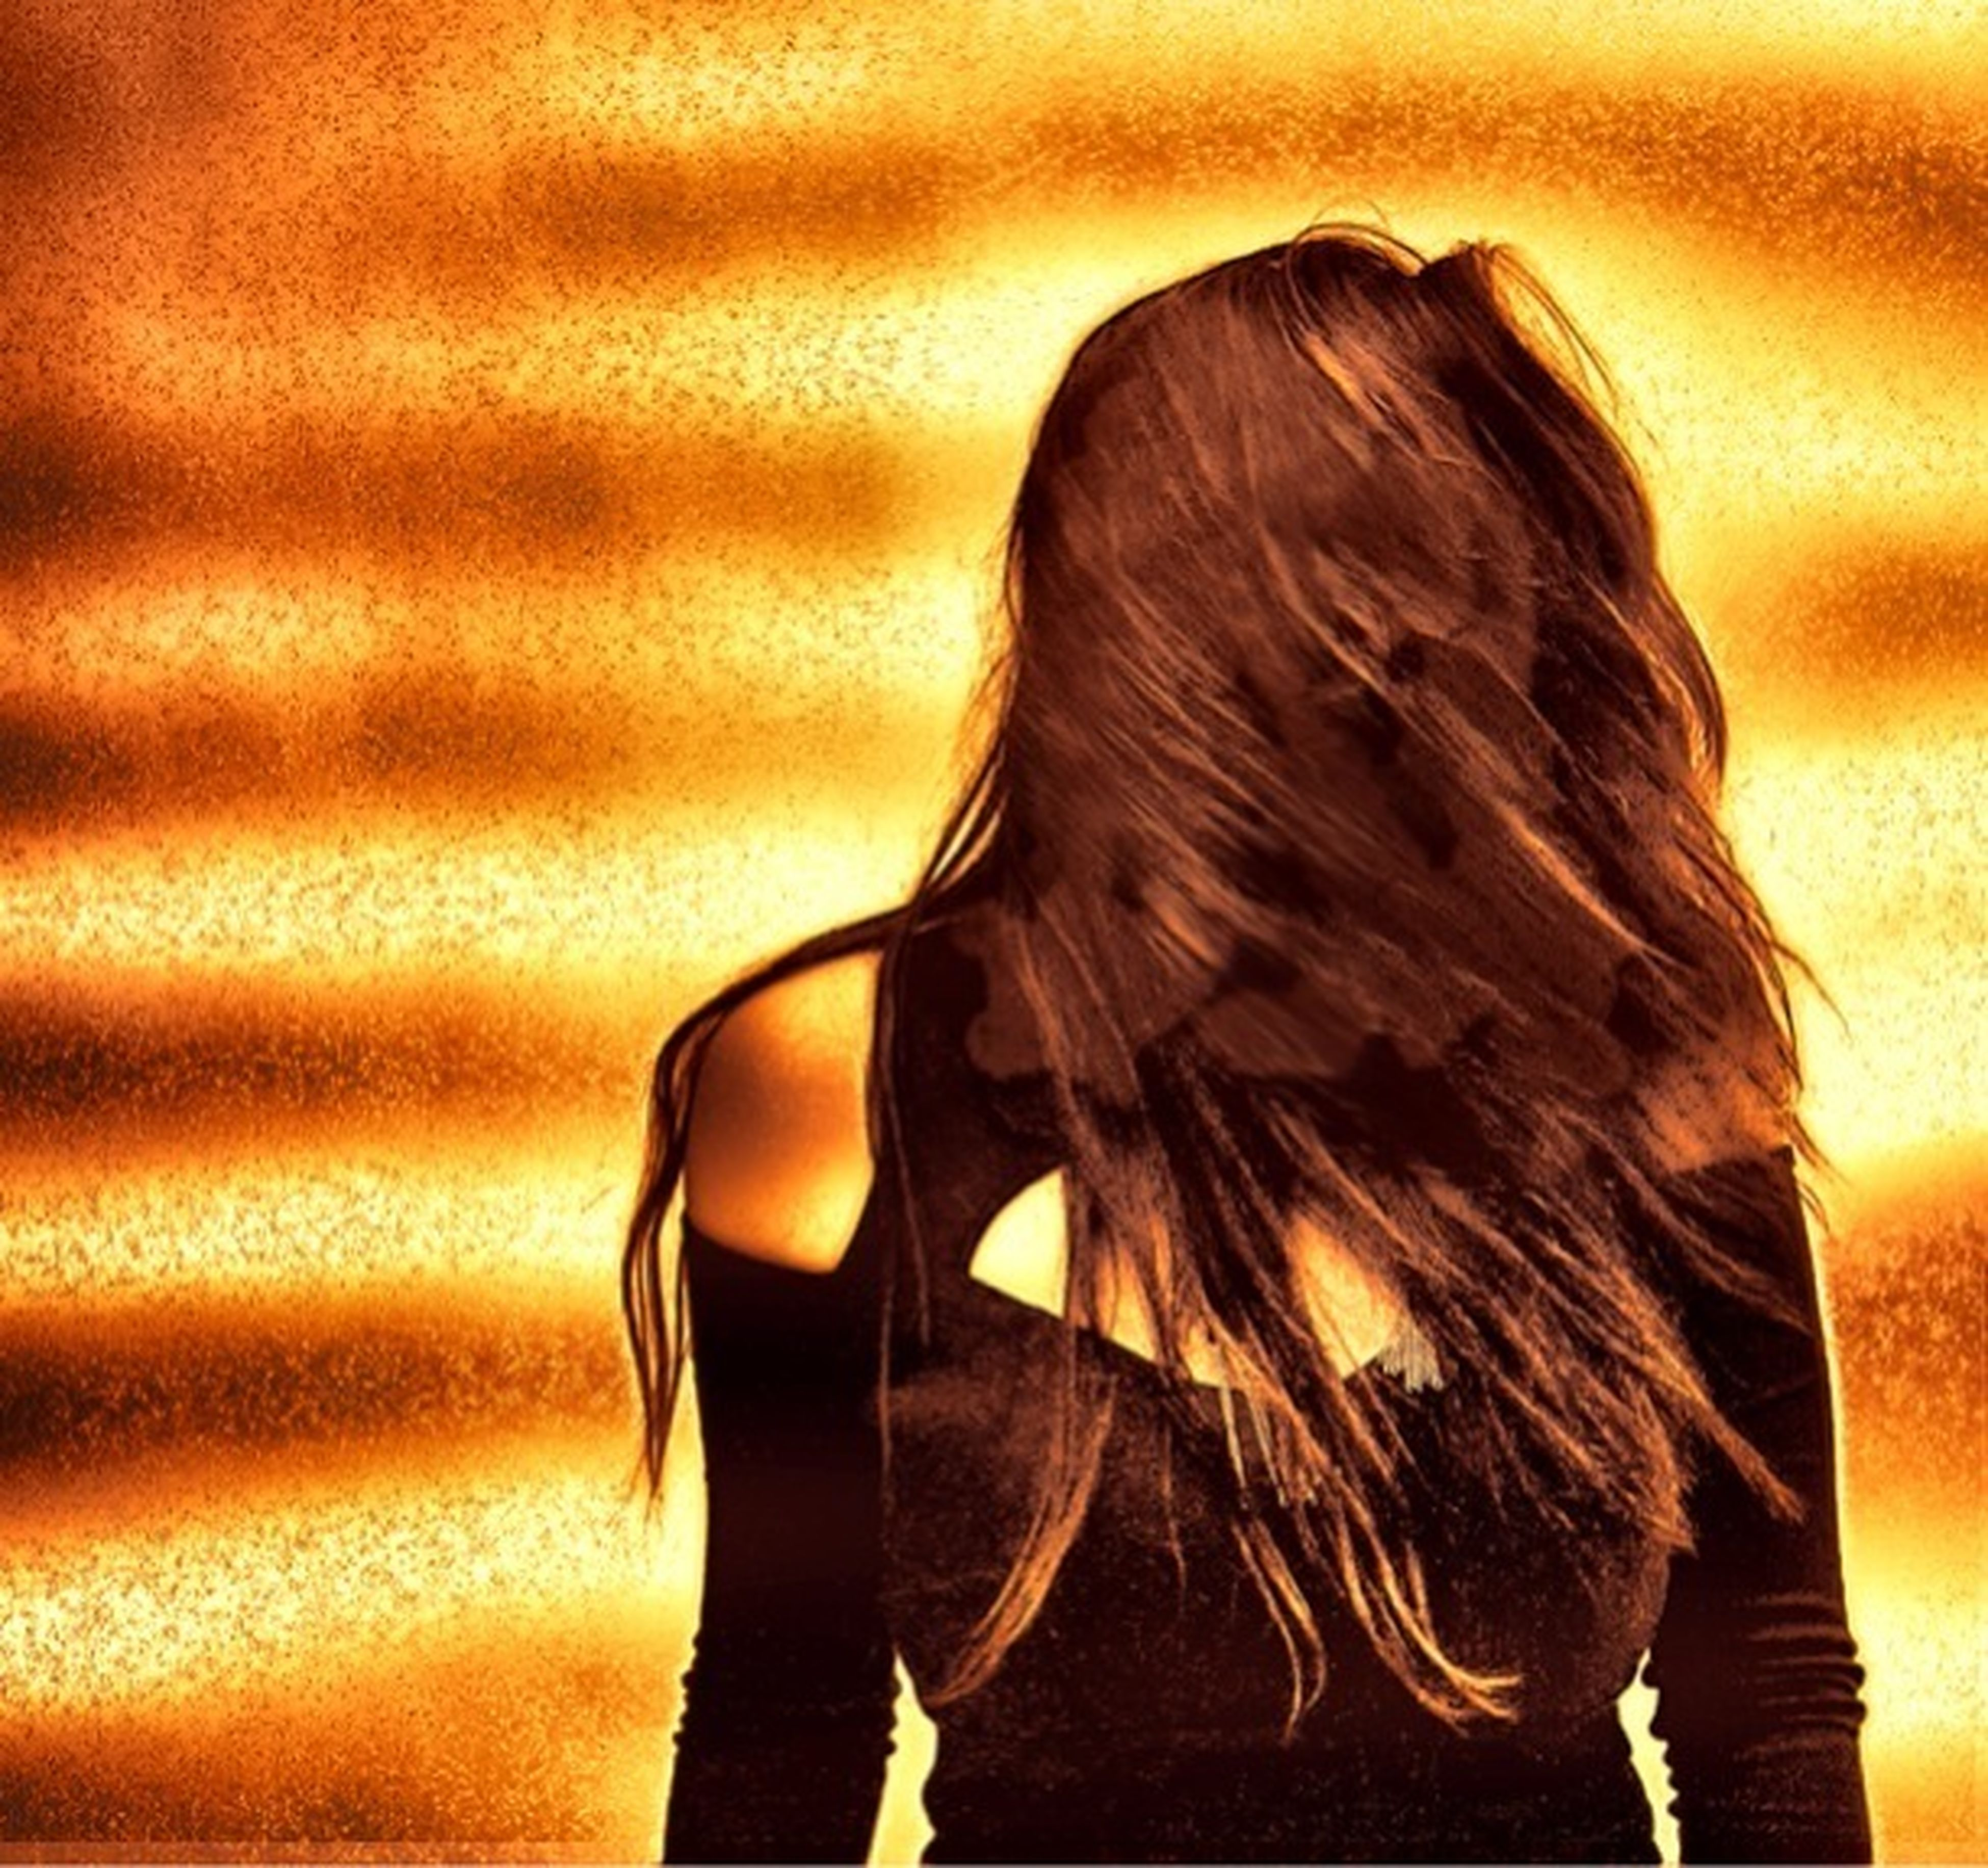 long hair, lifestyles, young women, leisure activity, rear view, headshot, waist up, person, young adult, indoors, standing, casual clothing, side view, obscured face, focus on foreground, human hair, close-up, contemplation